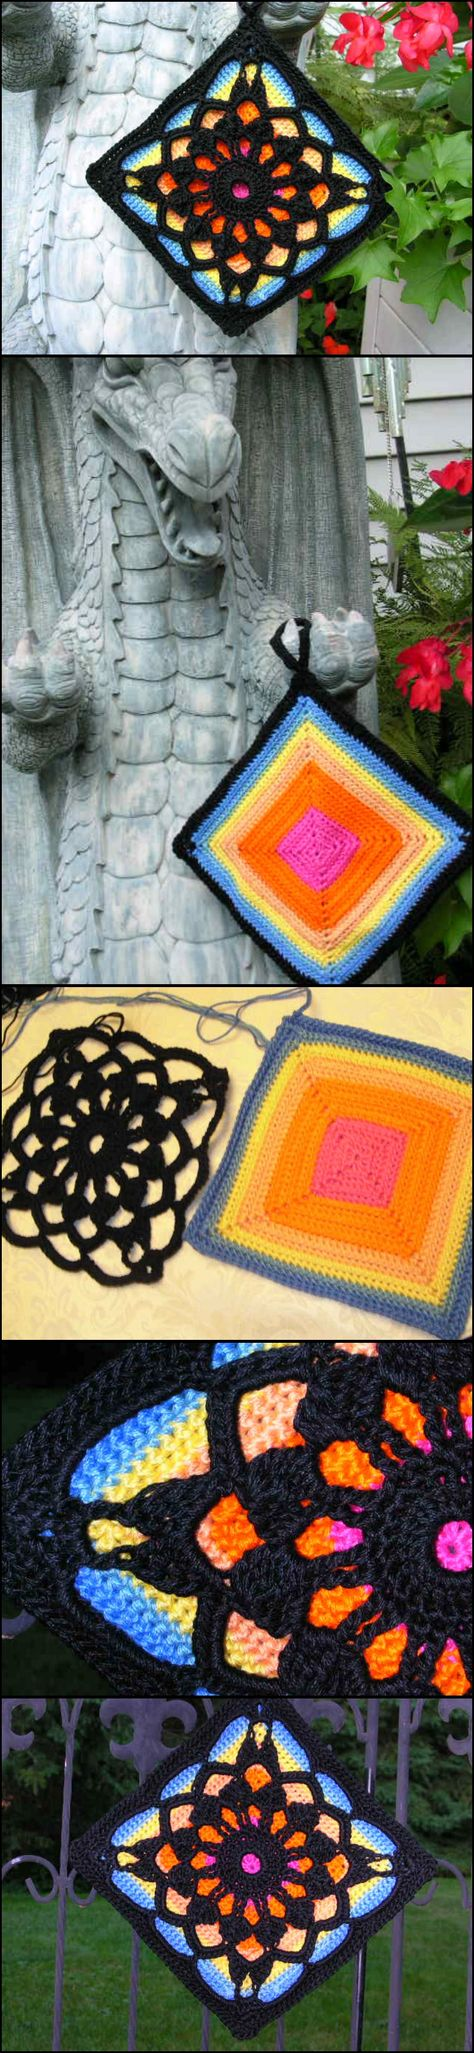 Crochet Fantastic Square Afghan Block with Free Pattern | Pinterest